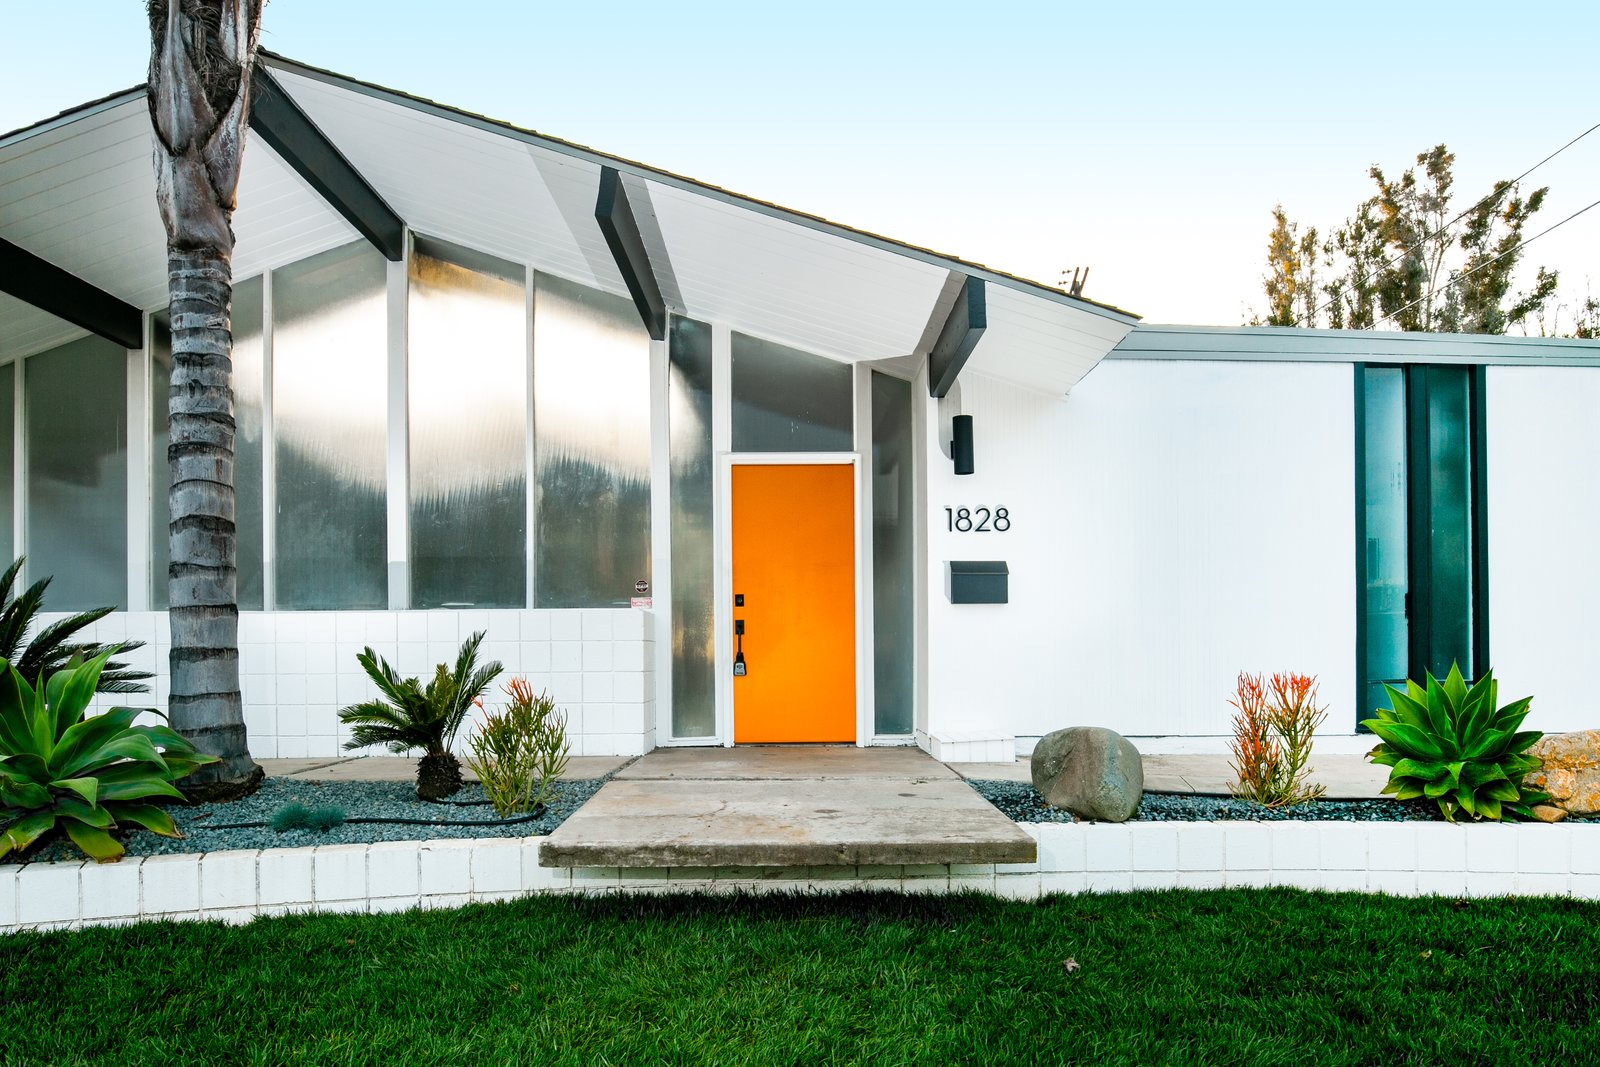 Before & After: A Muddled Eichler Gets a Dashing Update